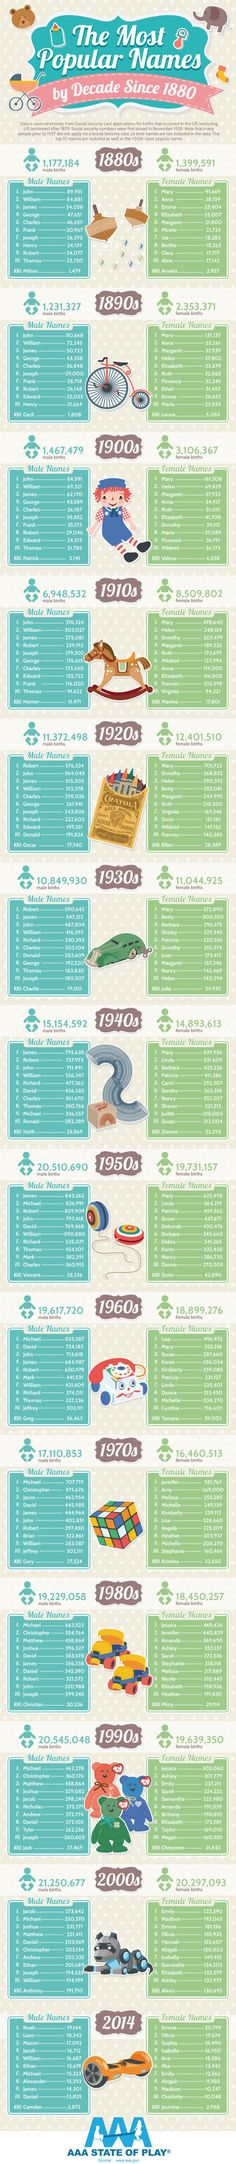 AAA State of Play, a commercial playground equipment company, put together this fun infographic detailing the top 10 most popular male and female names, as well as the hundredth most popular name of each gender, of every decade since the 1880s in the United States. All of the information comes ...